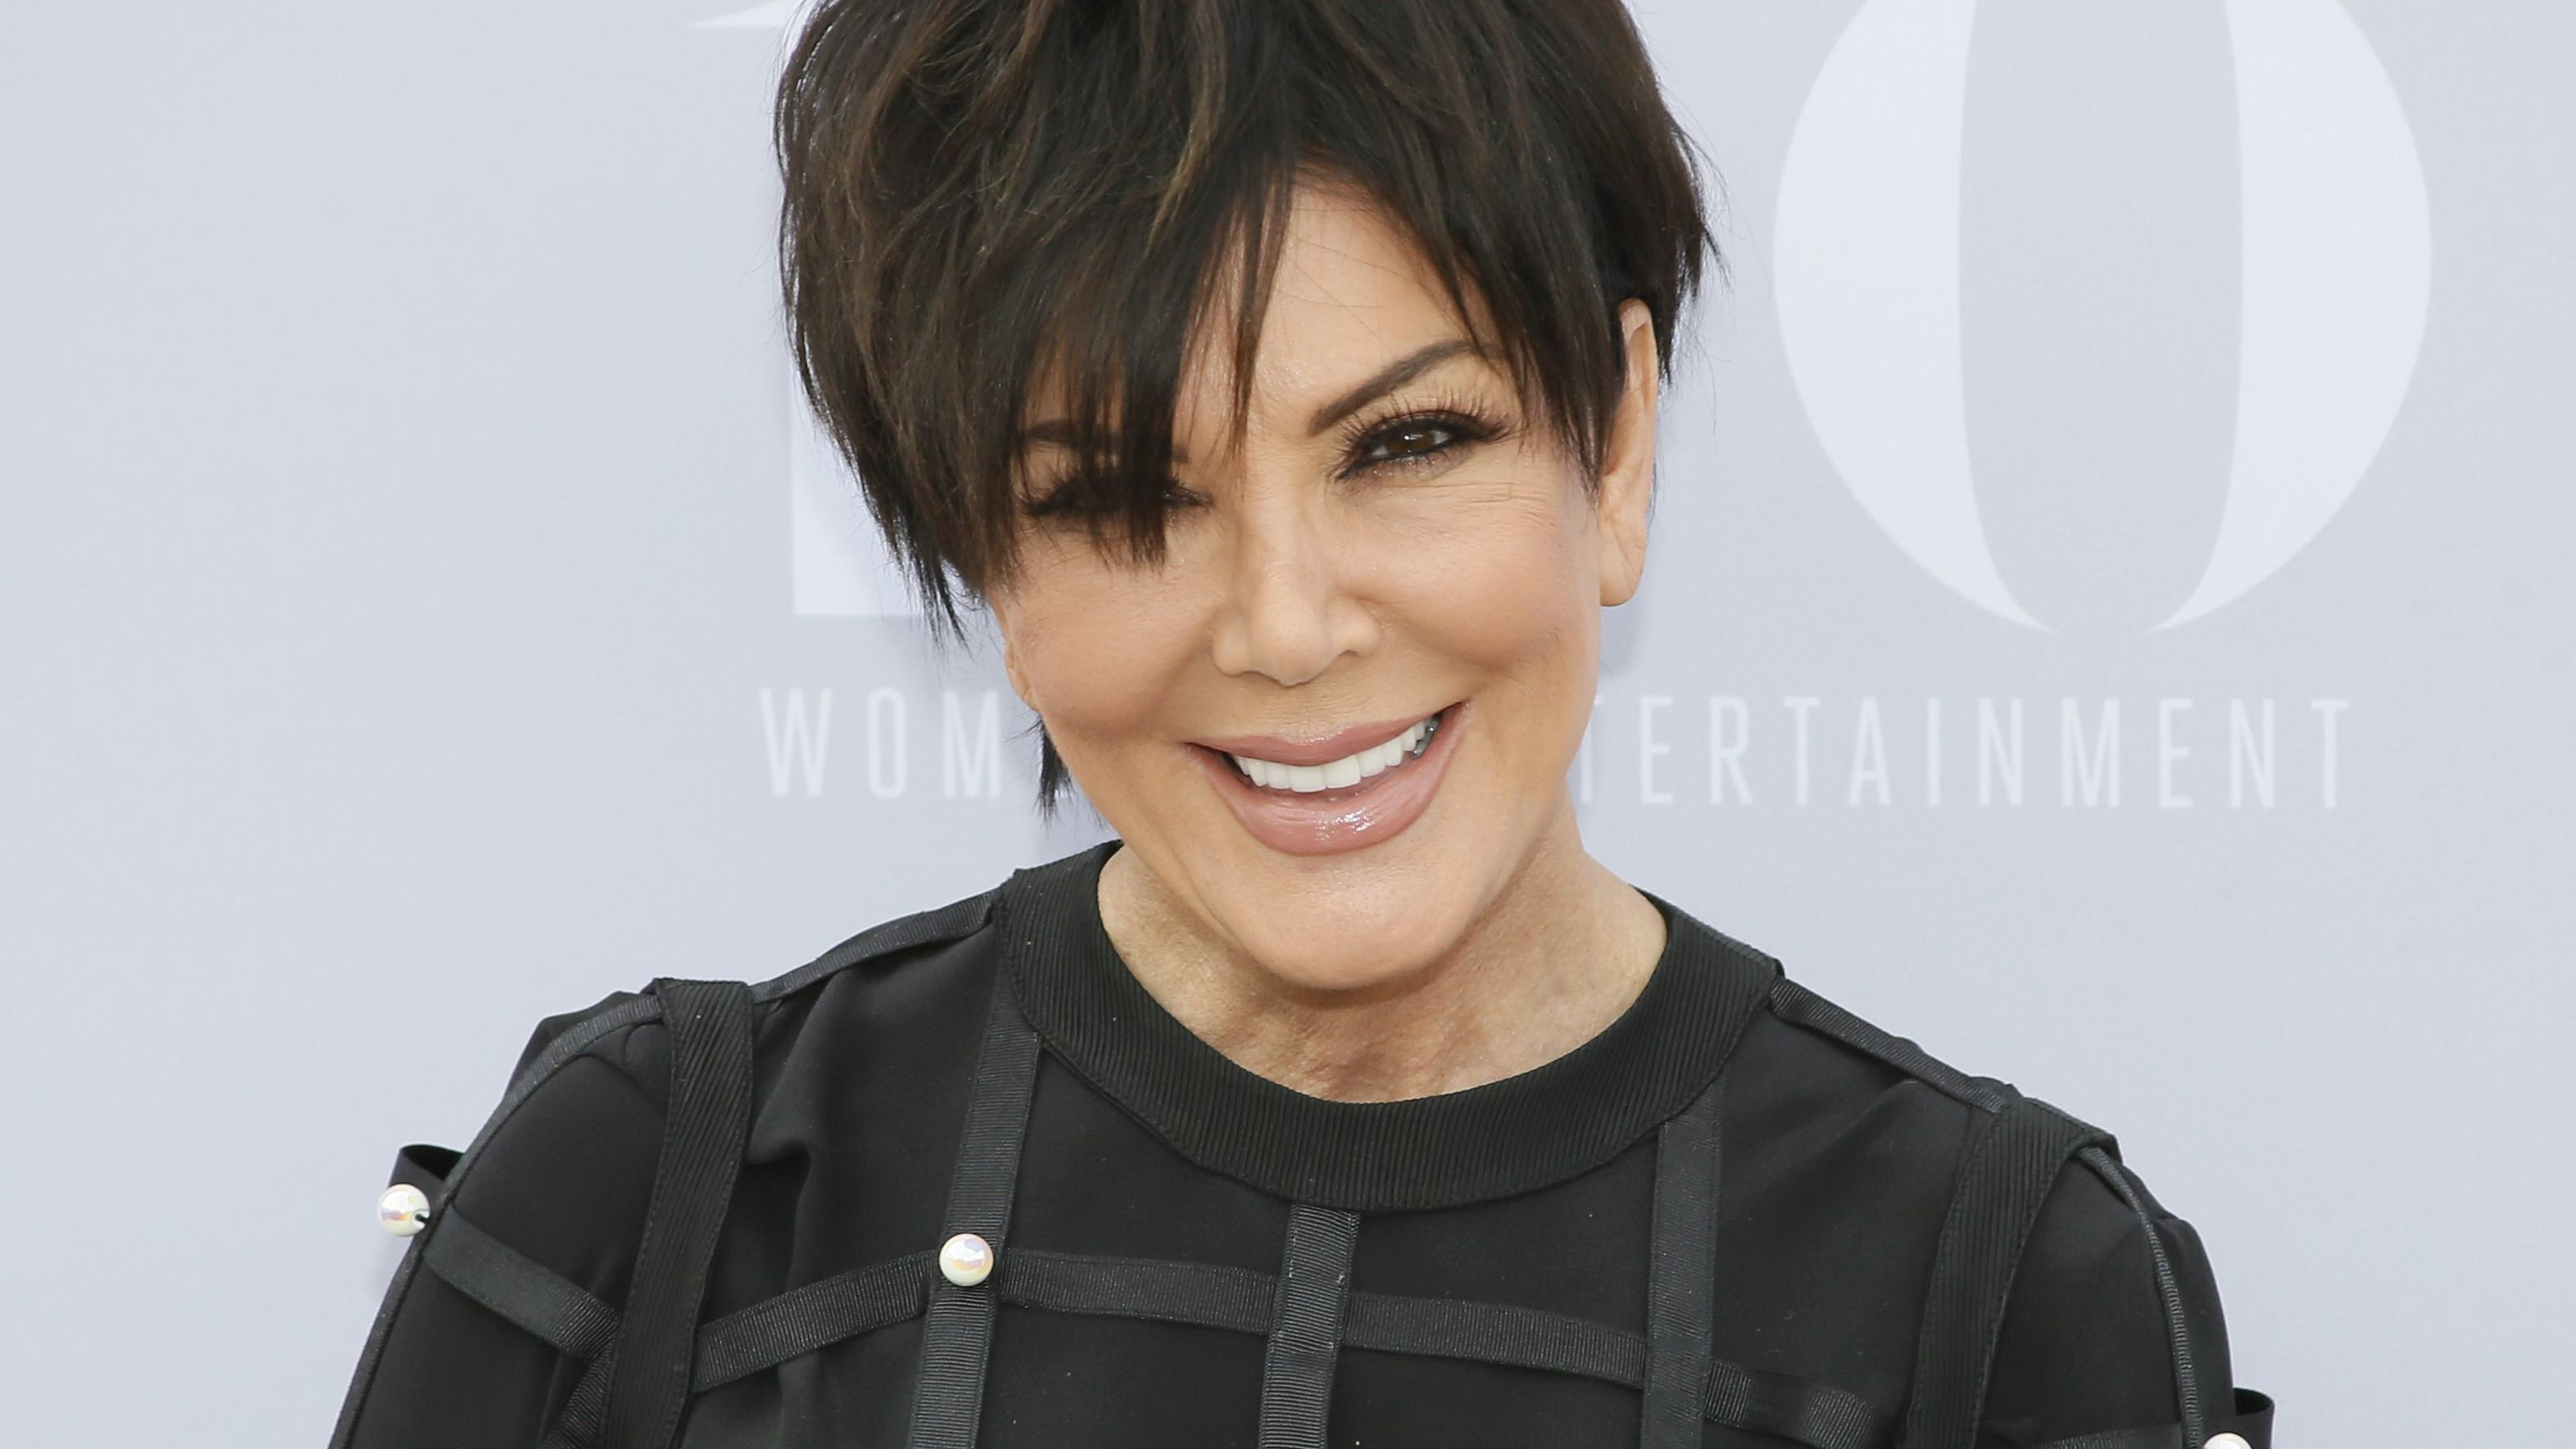 Television personality Kris Jenner poses at The Hollywood Reporter's Annual Women in Entertainment Breakfast in Los Angeles, California December 9, 2015. REUTERS/Danny Moloshok